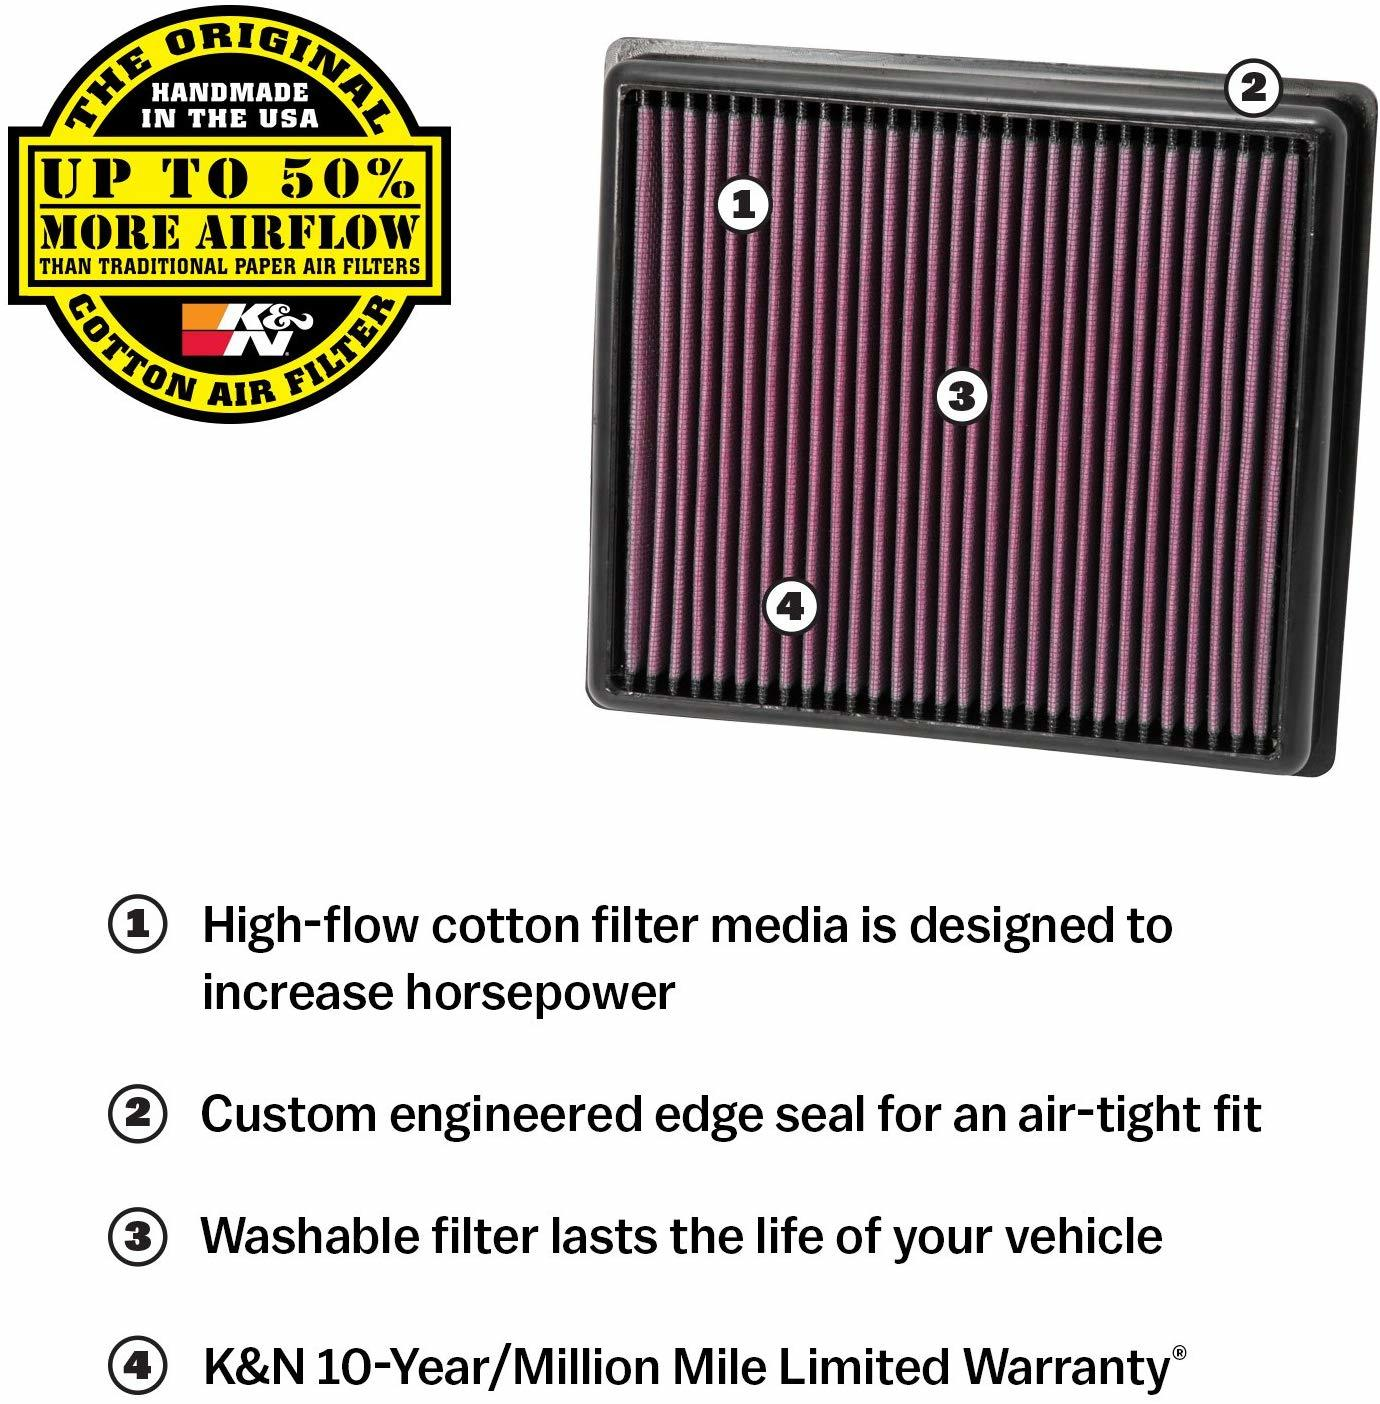 K&N replacement air filter - BMW Airhead Boxer 1970-80